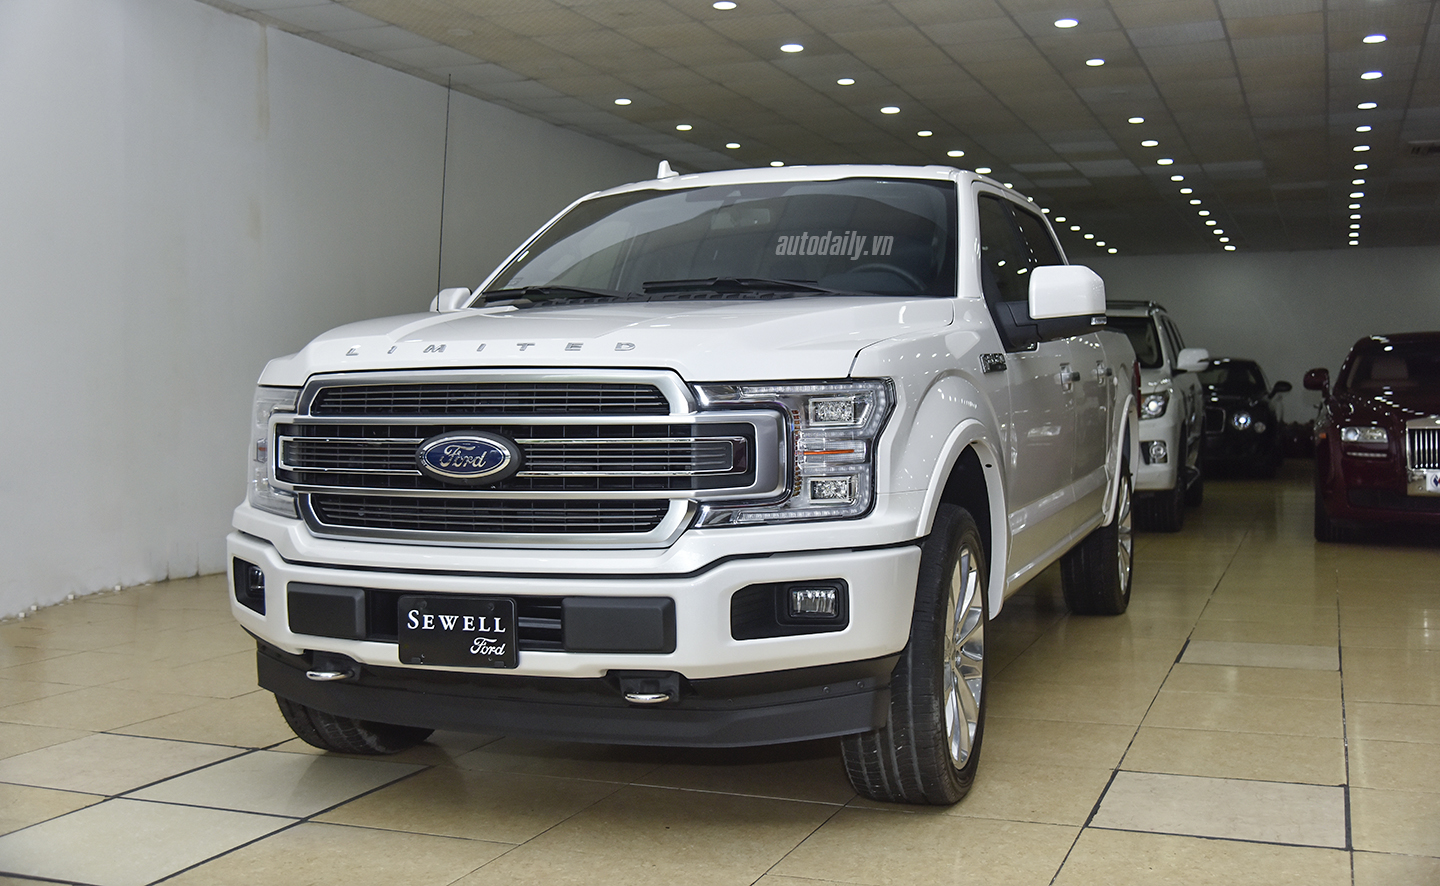 ford-f-150-limited-2018-dsc7157-copy.jpg